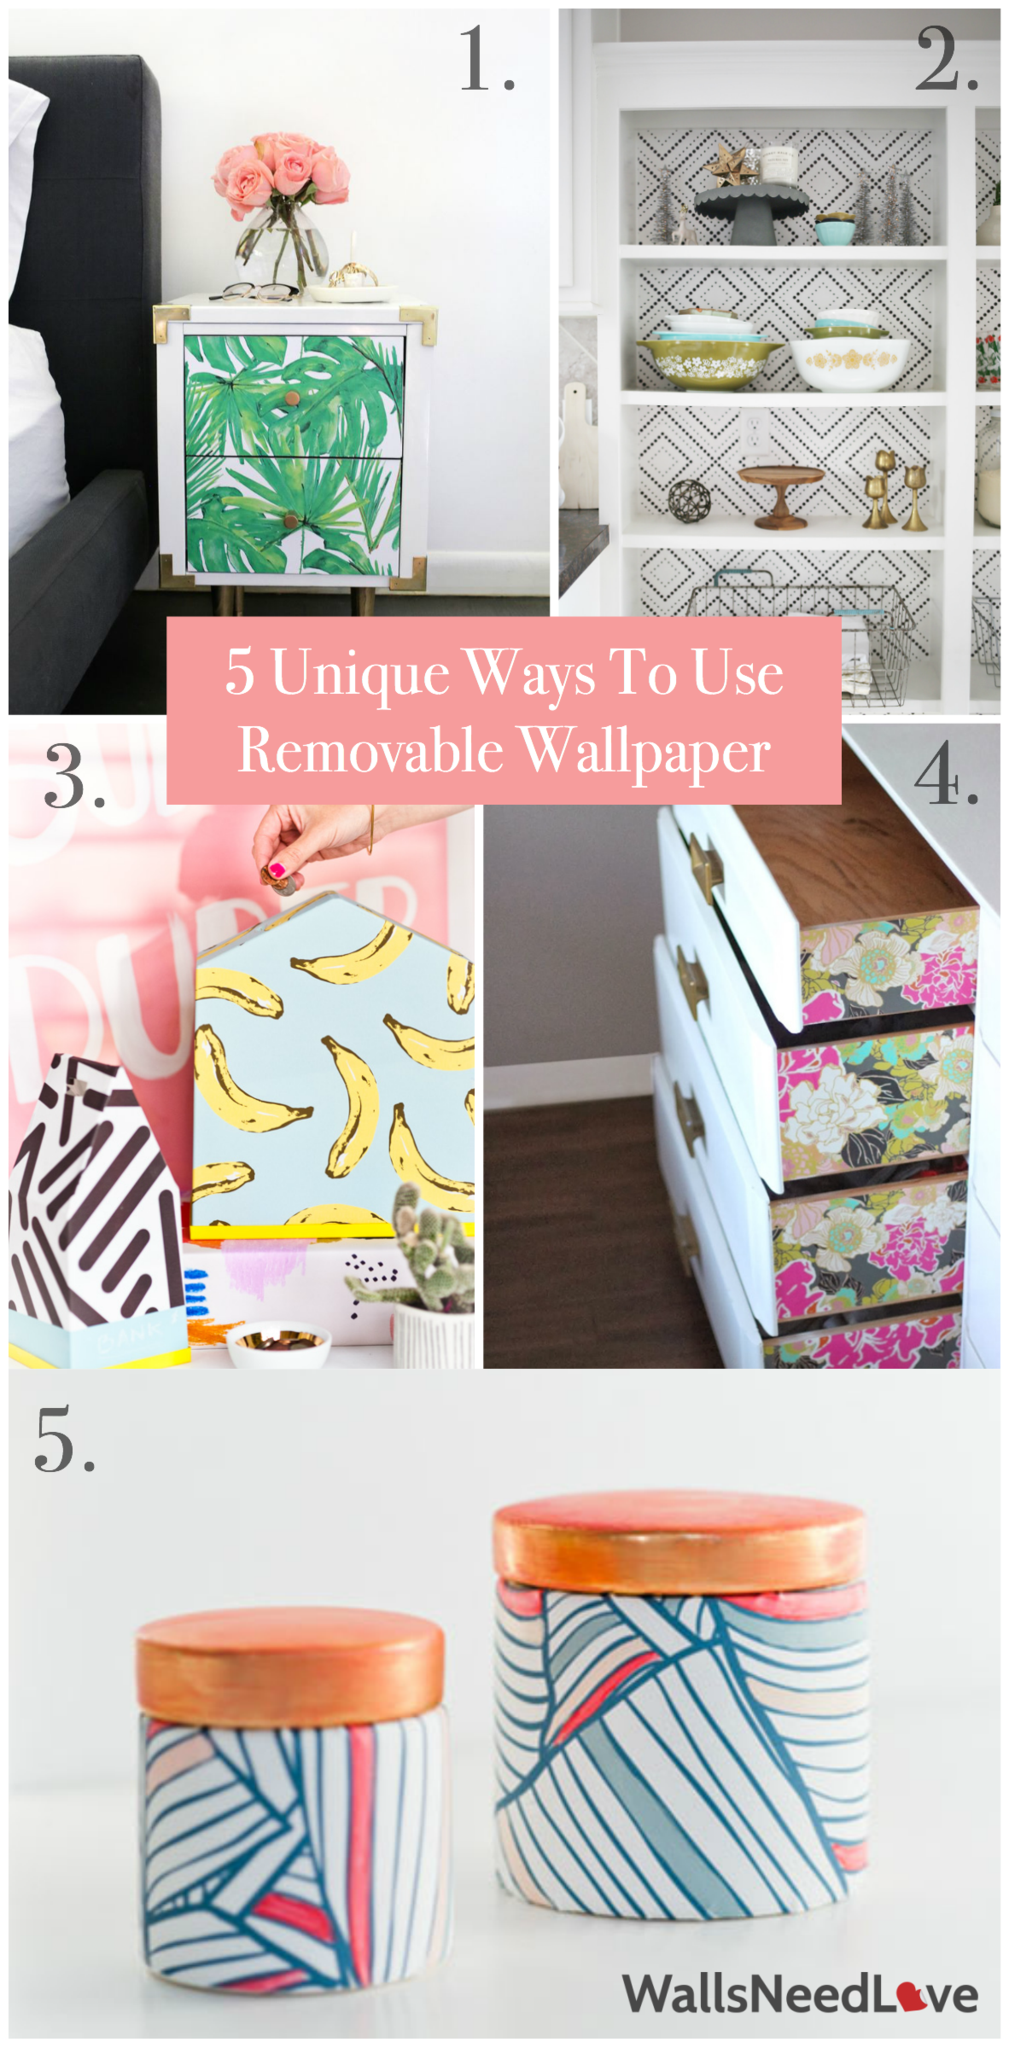 5 Unique Ways To Use Removable Wallpaper Removable Wallpaper Diy Wallpaper Wallpaper Furniture